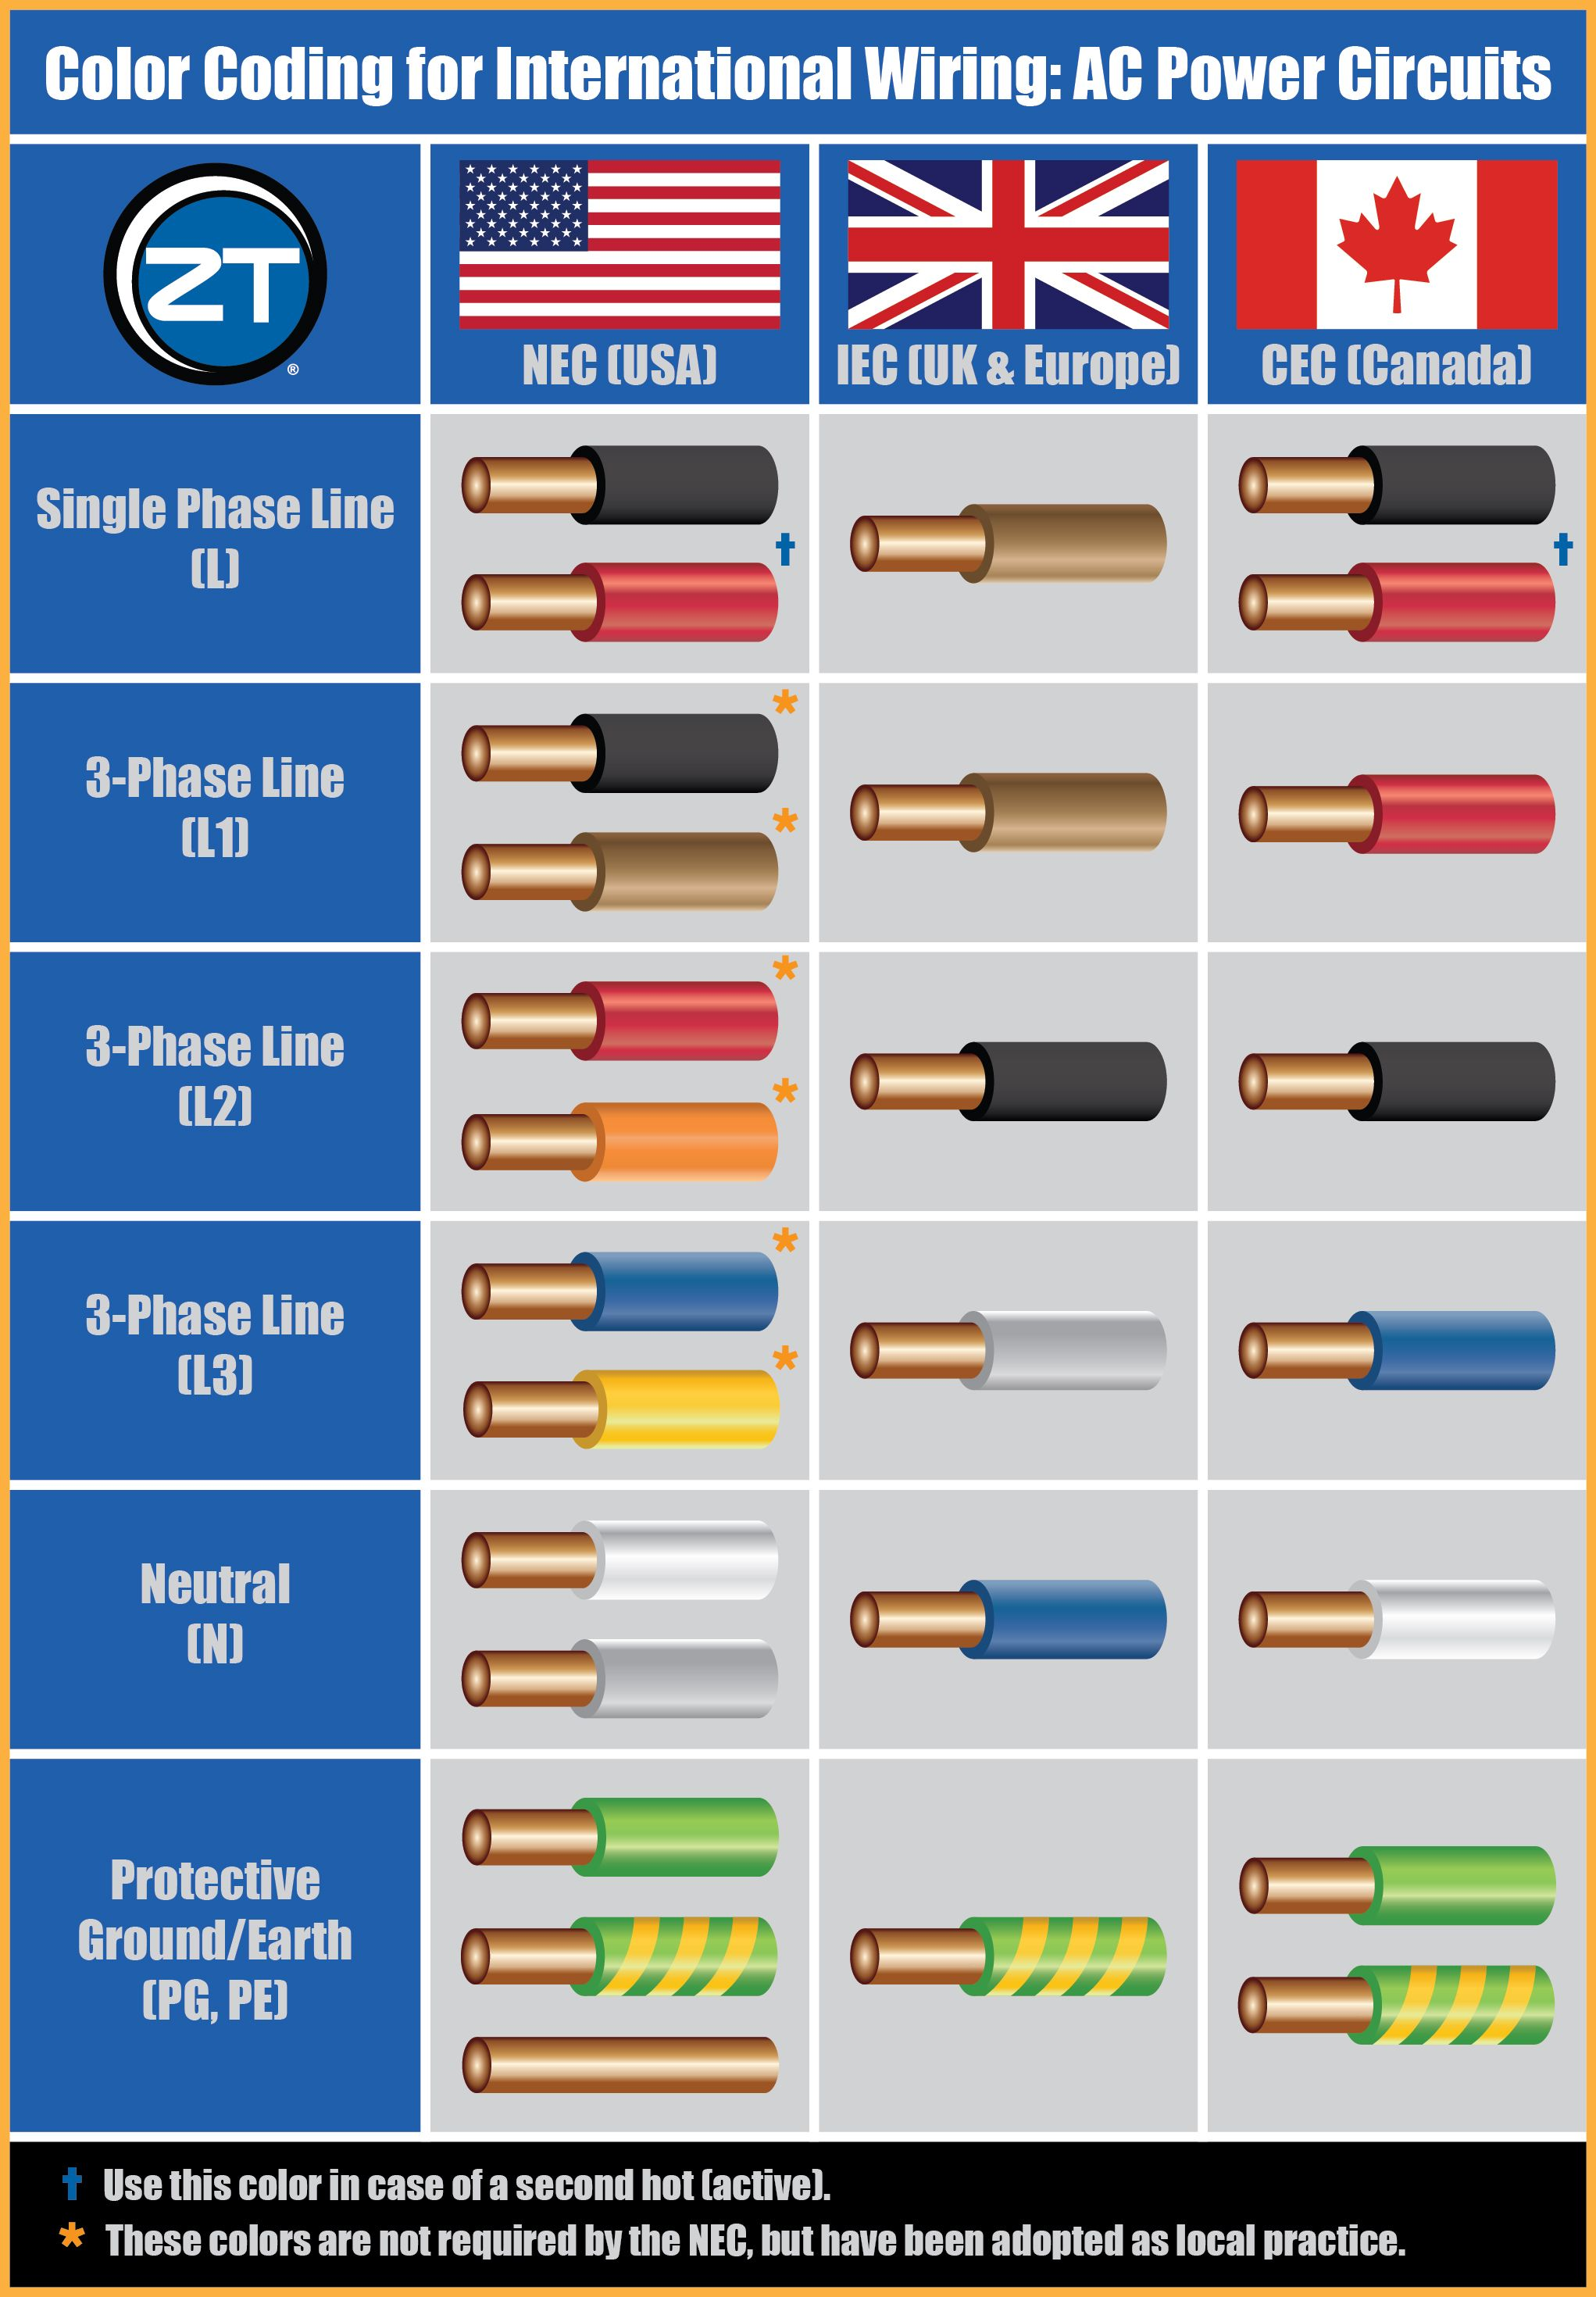 Guide to Color Coding for International Wiring #international #electrical # wiring #electrician #electric #cables